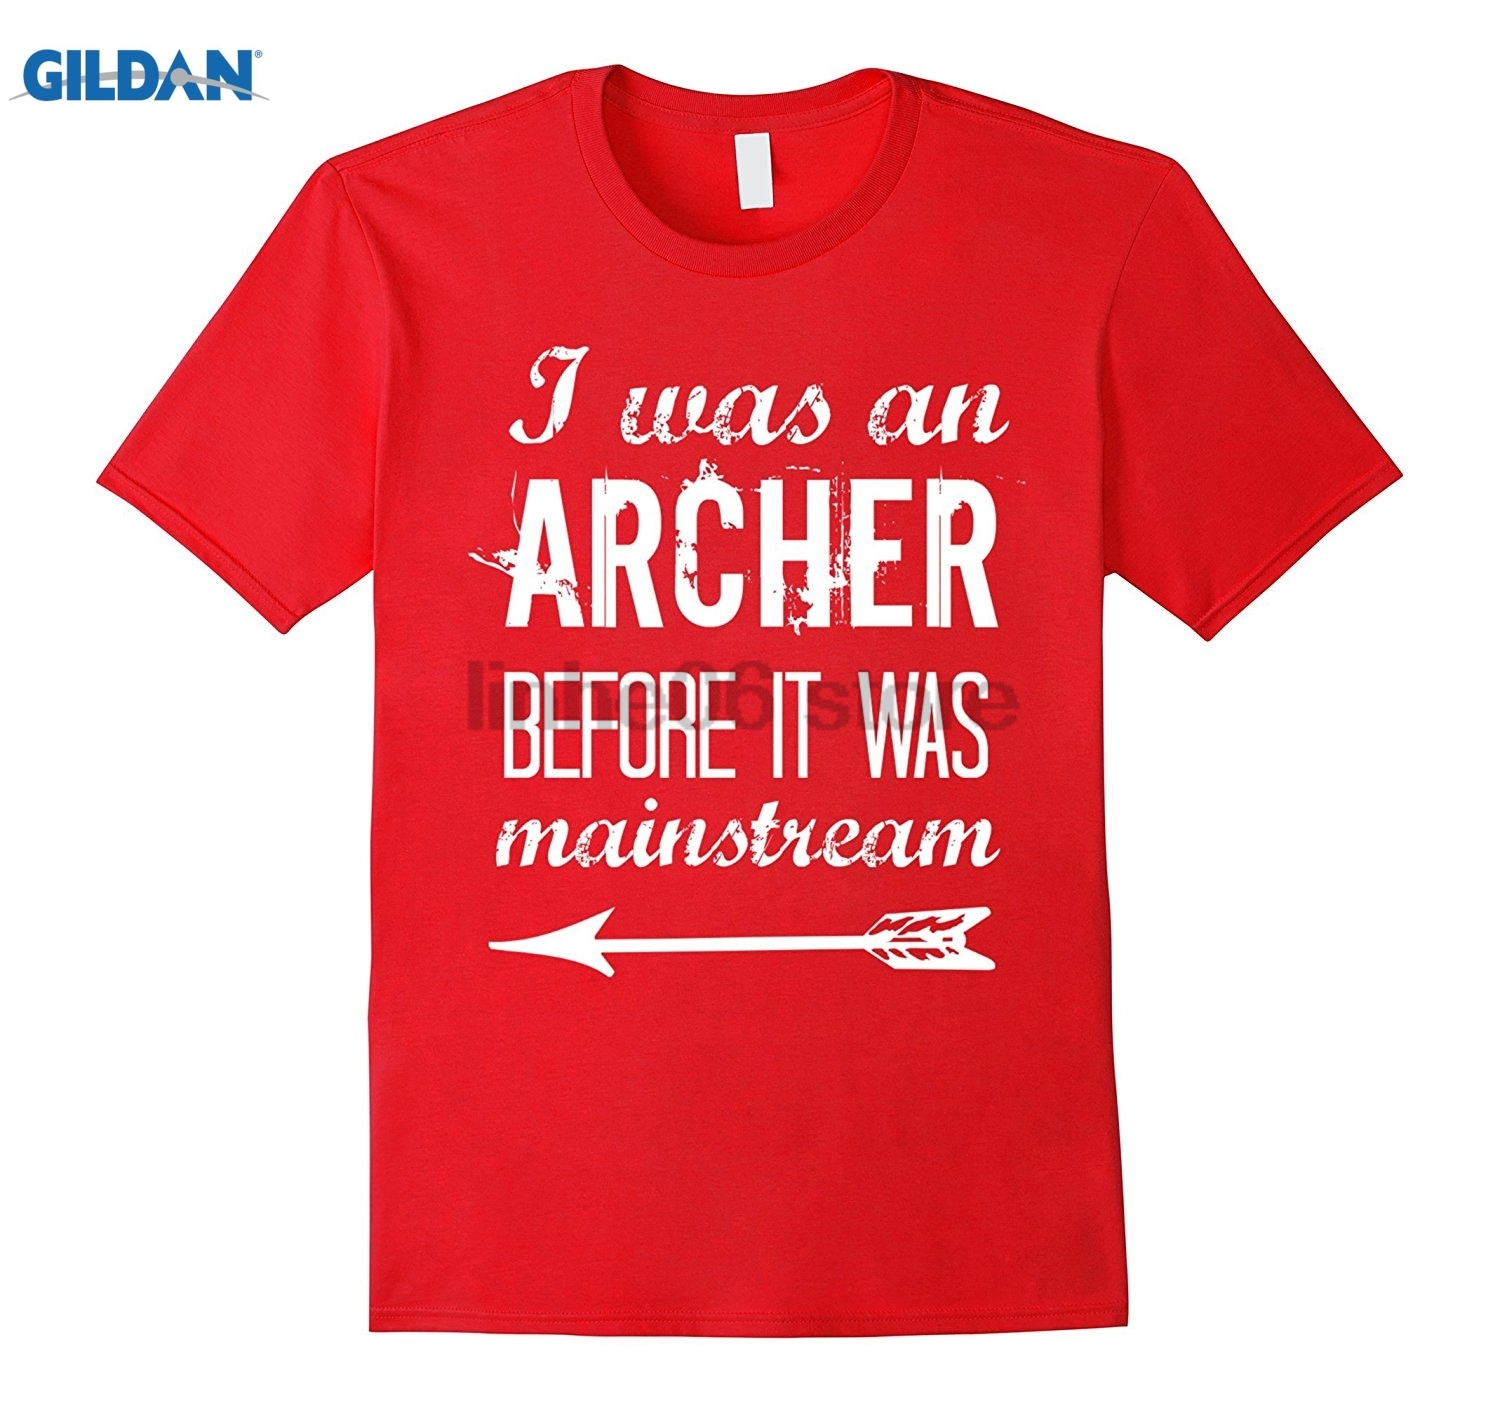 GILDAN Archery Mom Funny Target Item for Youth Women Archer T-Shirt Mothers Day Ms. T-shirt